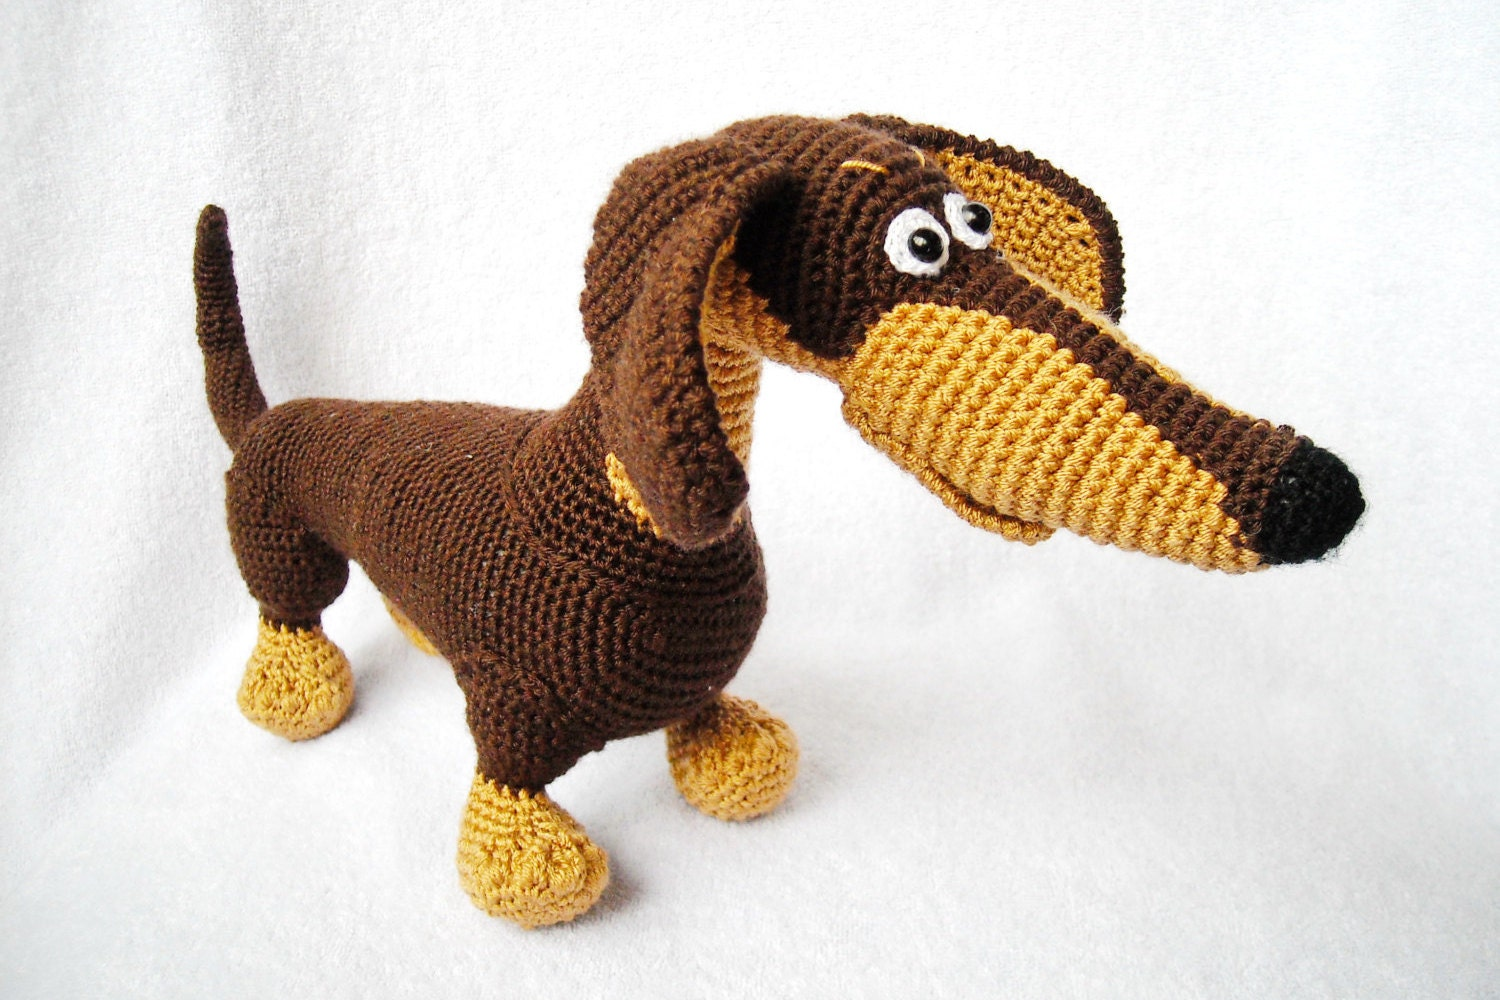 Crochet dachshund Brown Amigurumi Dachshund stuffed animal dog